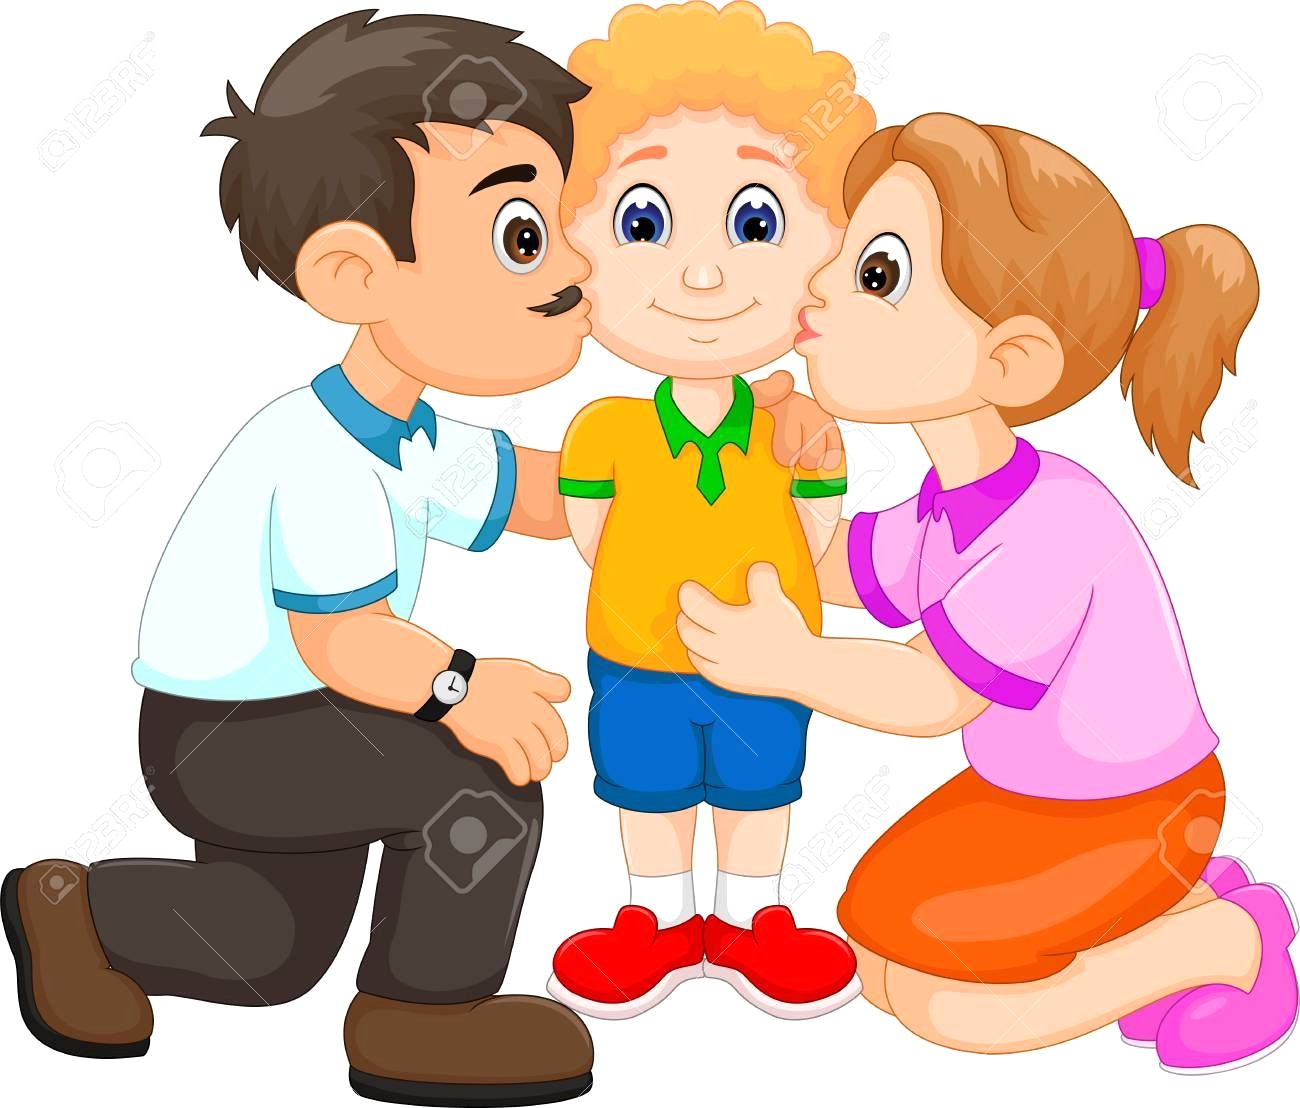 Free download clip art. Hug clipart mother child